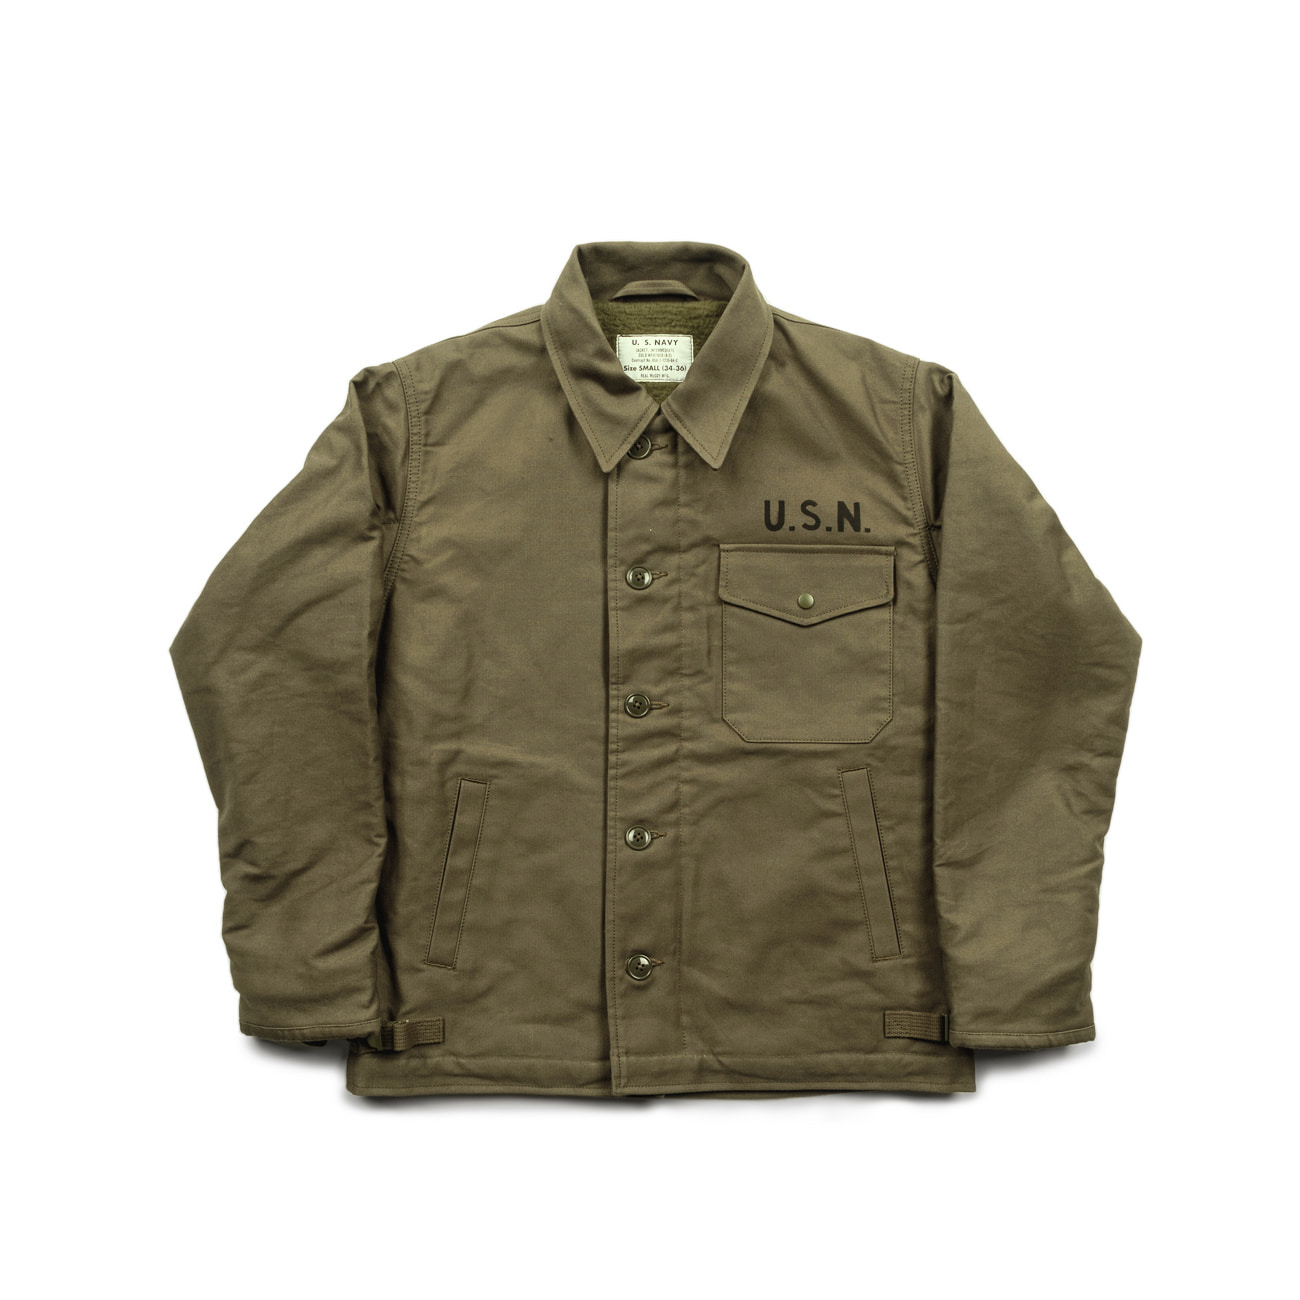 USN A-2 Deck Jacket